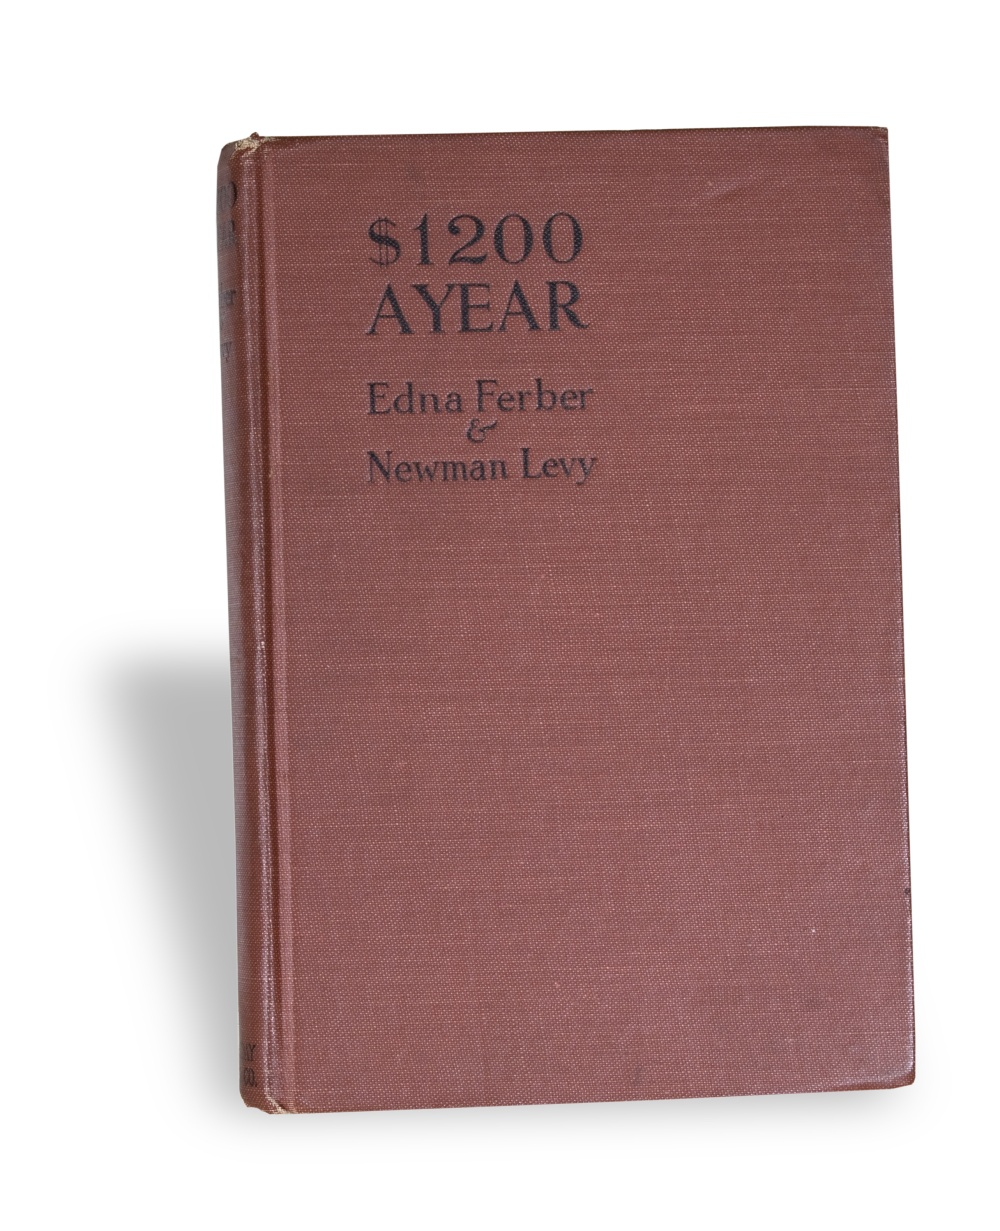 Book, $1200 a Year, by Edna Ferber